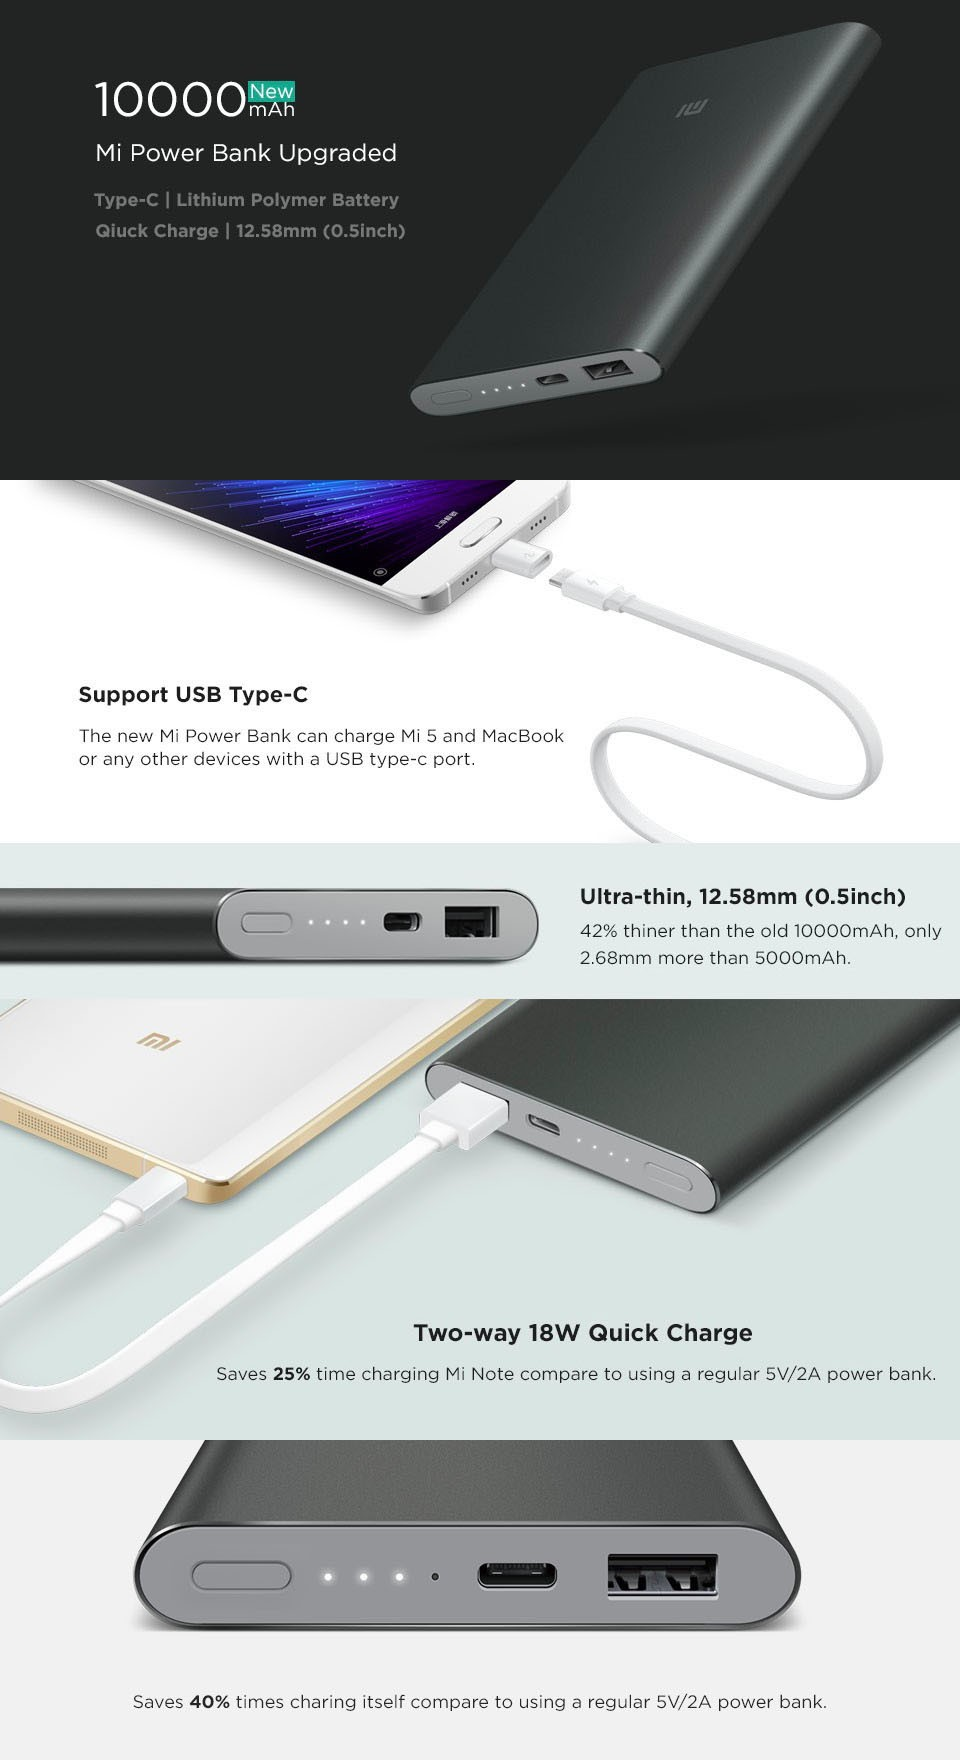 Original Xiaomi 10000mAh Pro Power Bank Ultra Slim 18W Quick Charger QC2.0 (12V 1.5A/9V 2A/5V 2A ) support Type-C